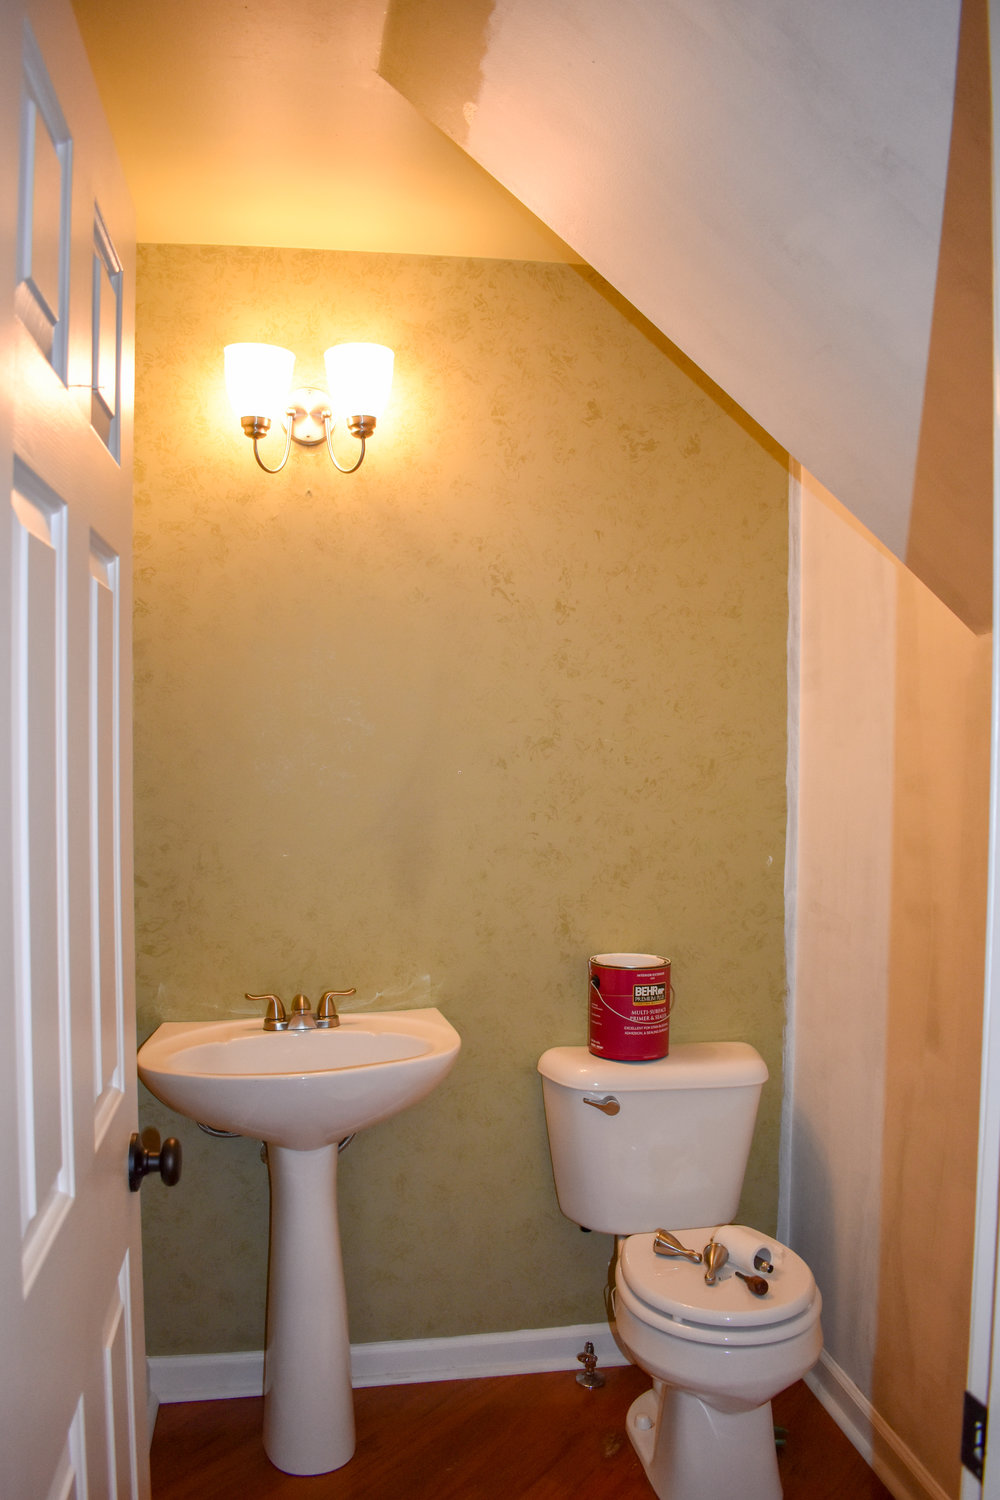 How To Stage A Powder Room - even if you don't want to completely redecorate! This cavernous powder room got a complete facelift, without new paint, in just two hours and for less than $150! #realestatestaging #stagingtips #powderroomstaging